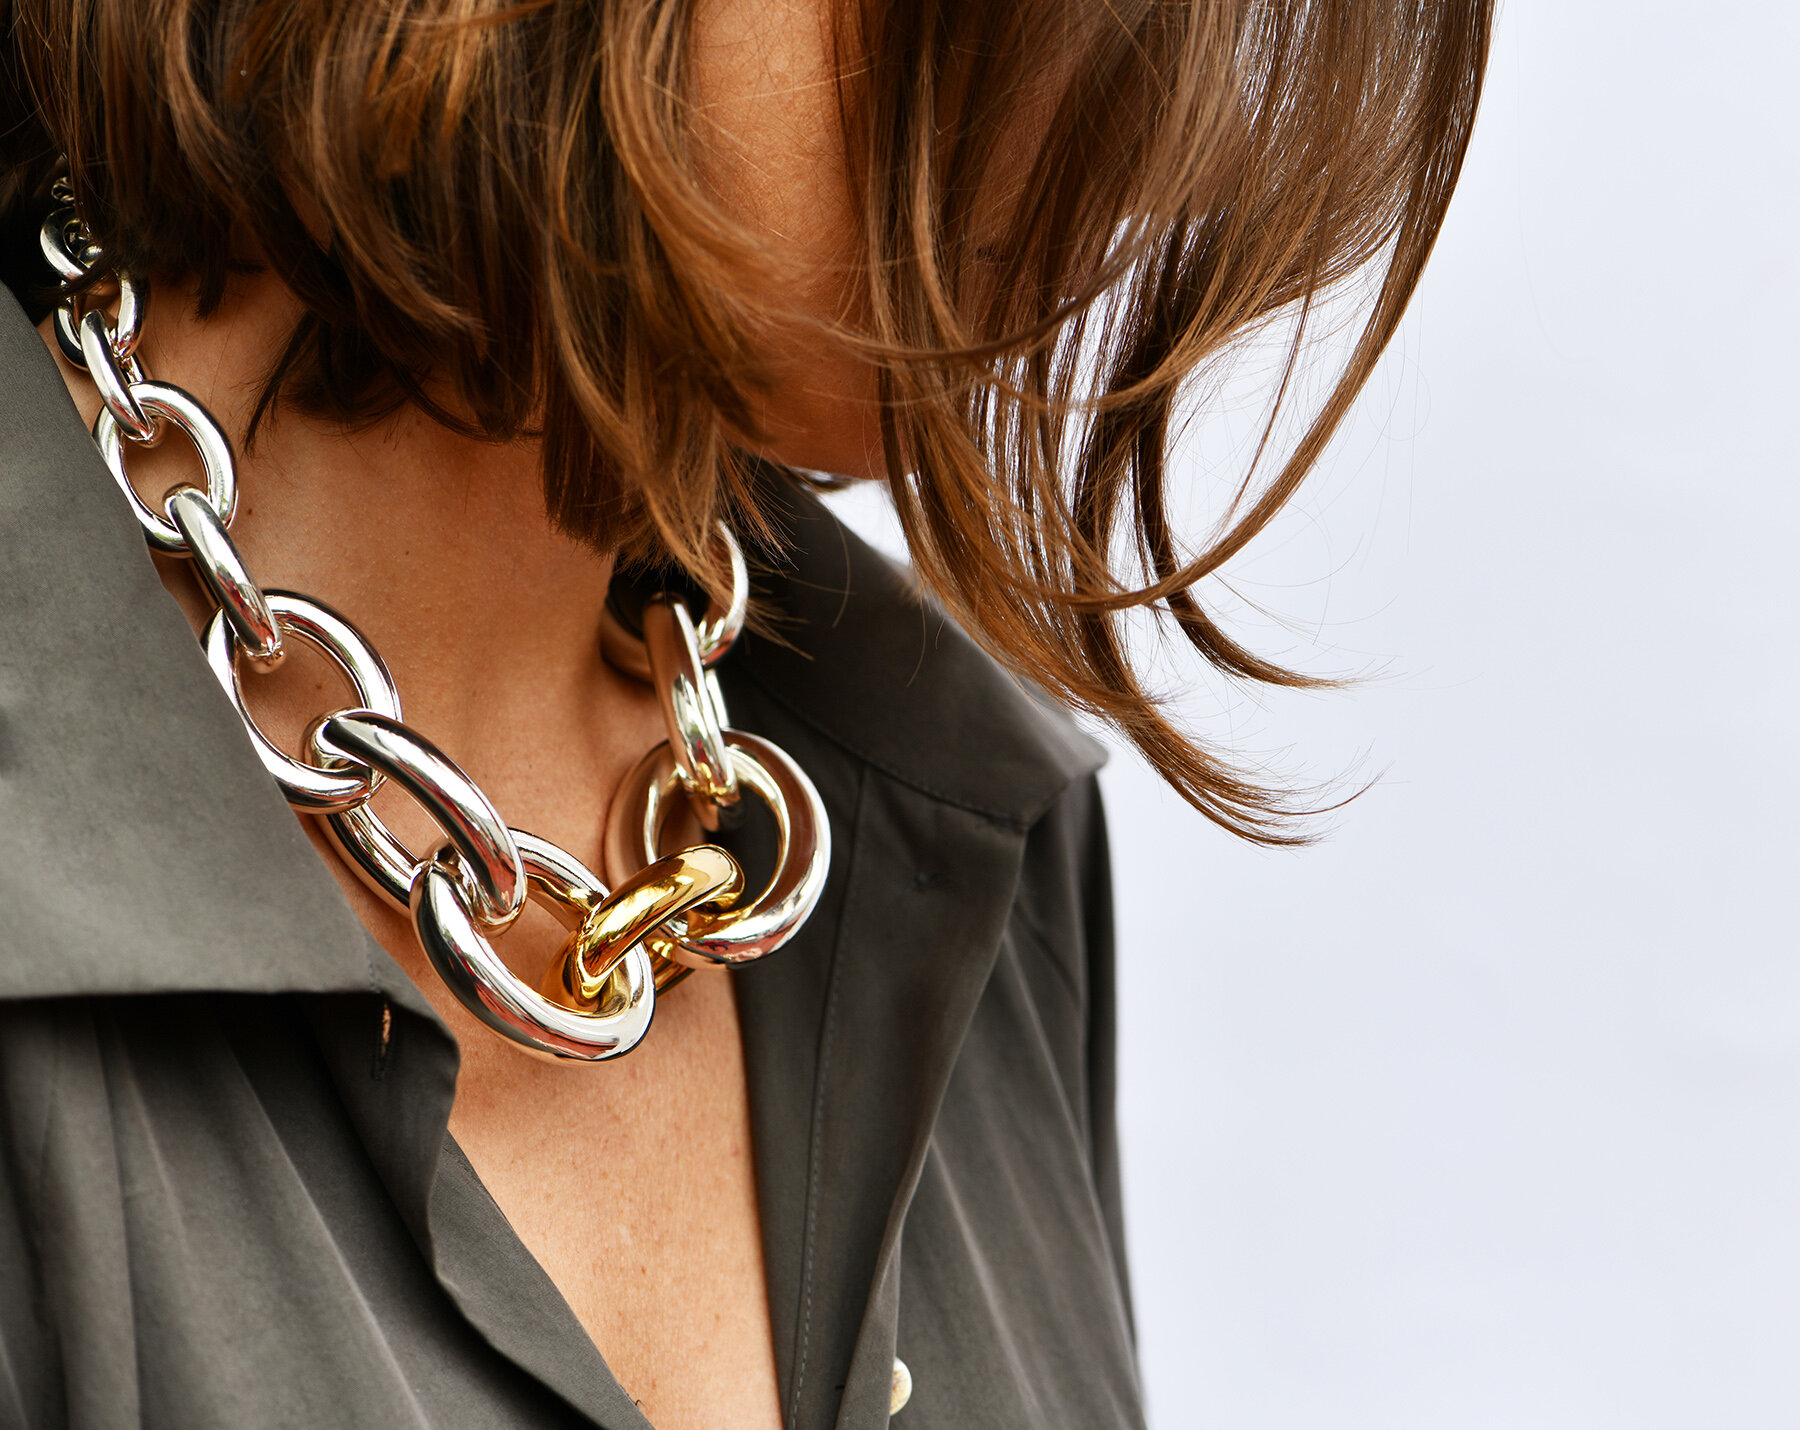 """TANE Mexico 1942 """"Niebo"""" Chunky Chain Necklace in 23K Gold Vermeil and 925 Sterling Silver, $2,199"""